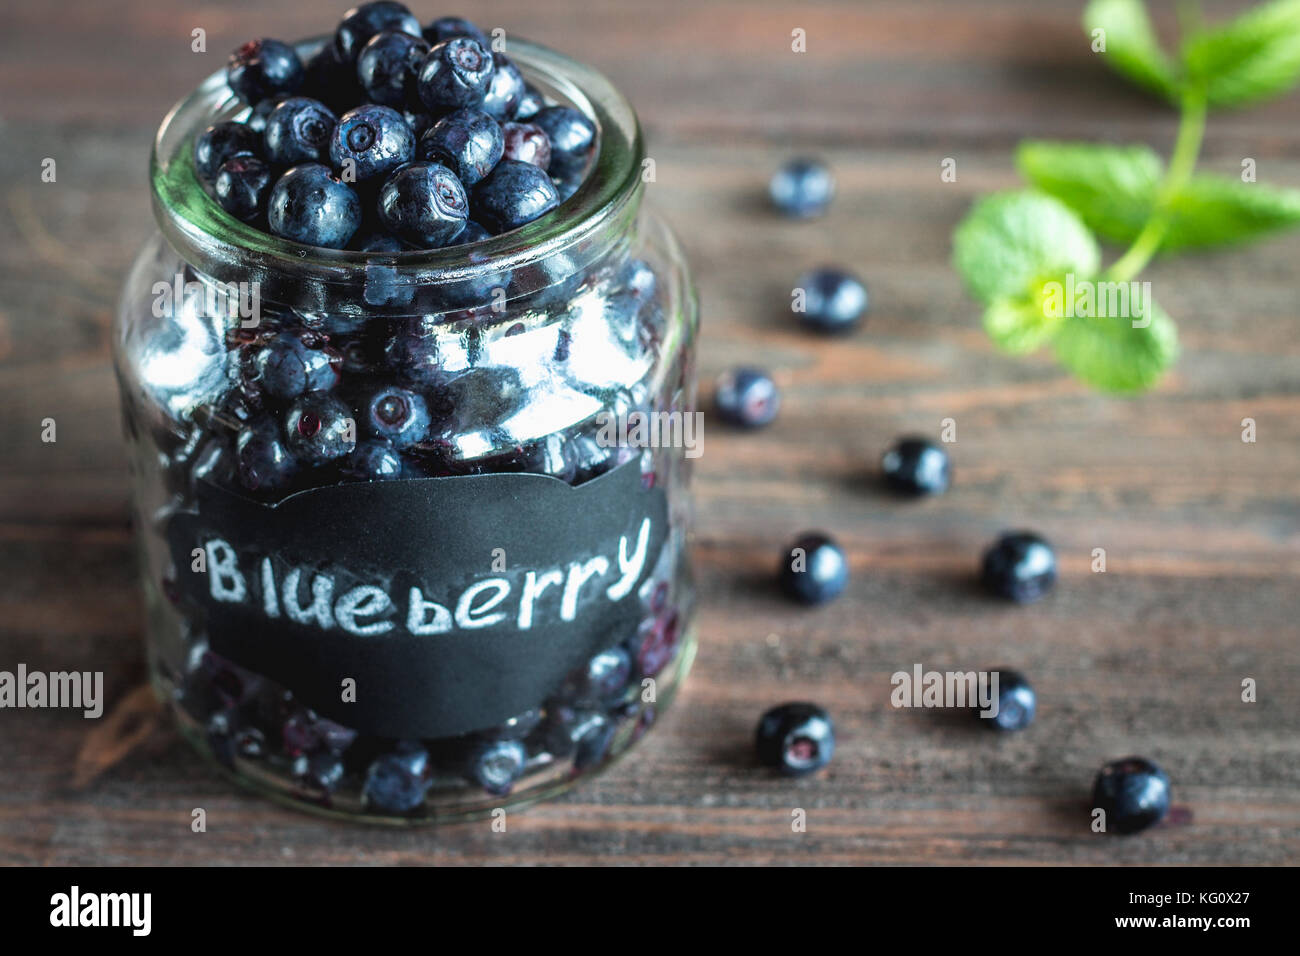 Blueberry antioxidant organic superfood in a jar concept for healthy eating and nutrition - Stock Image